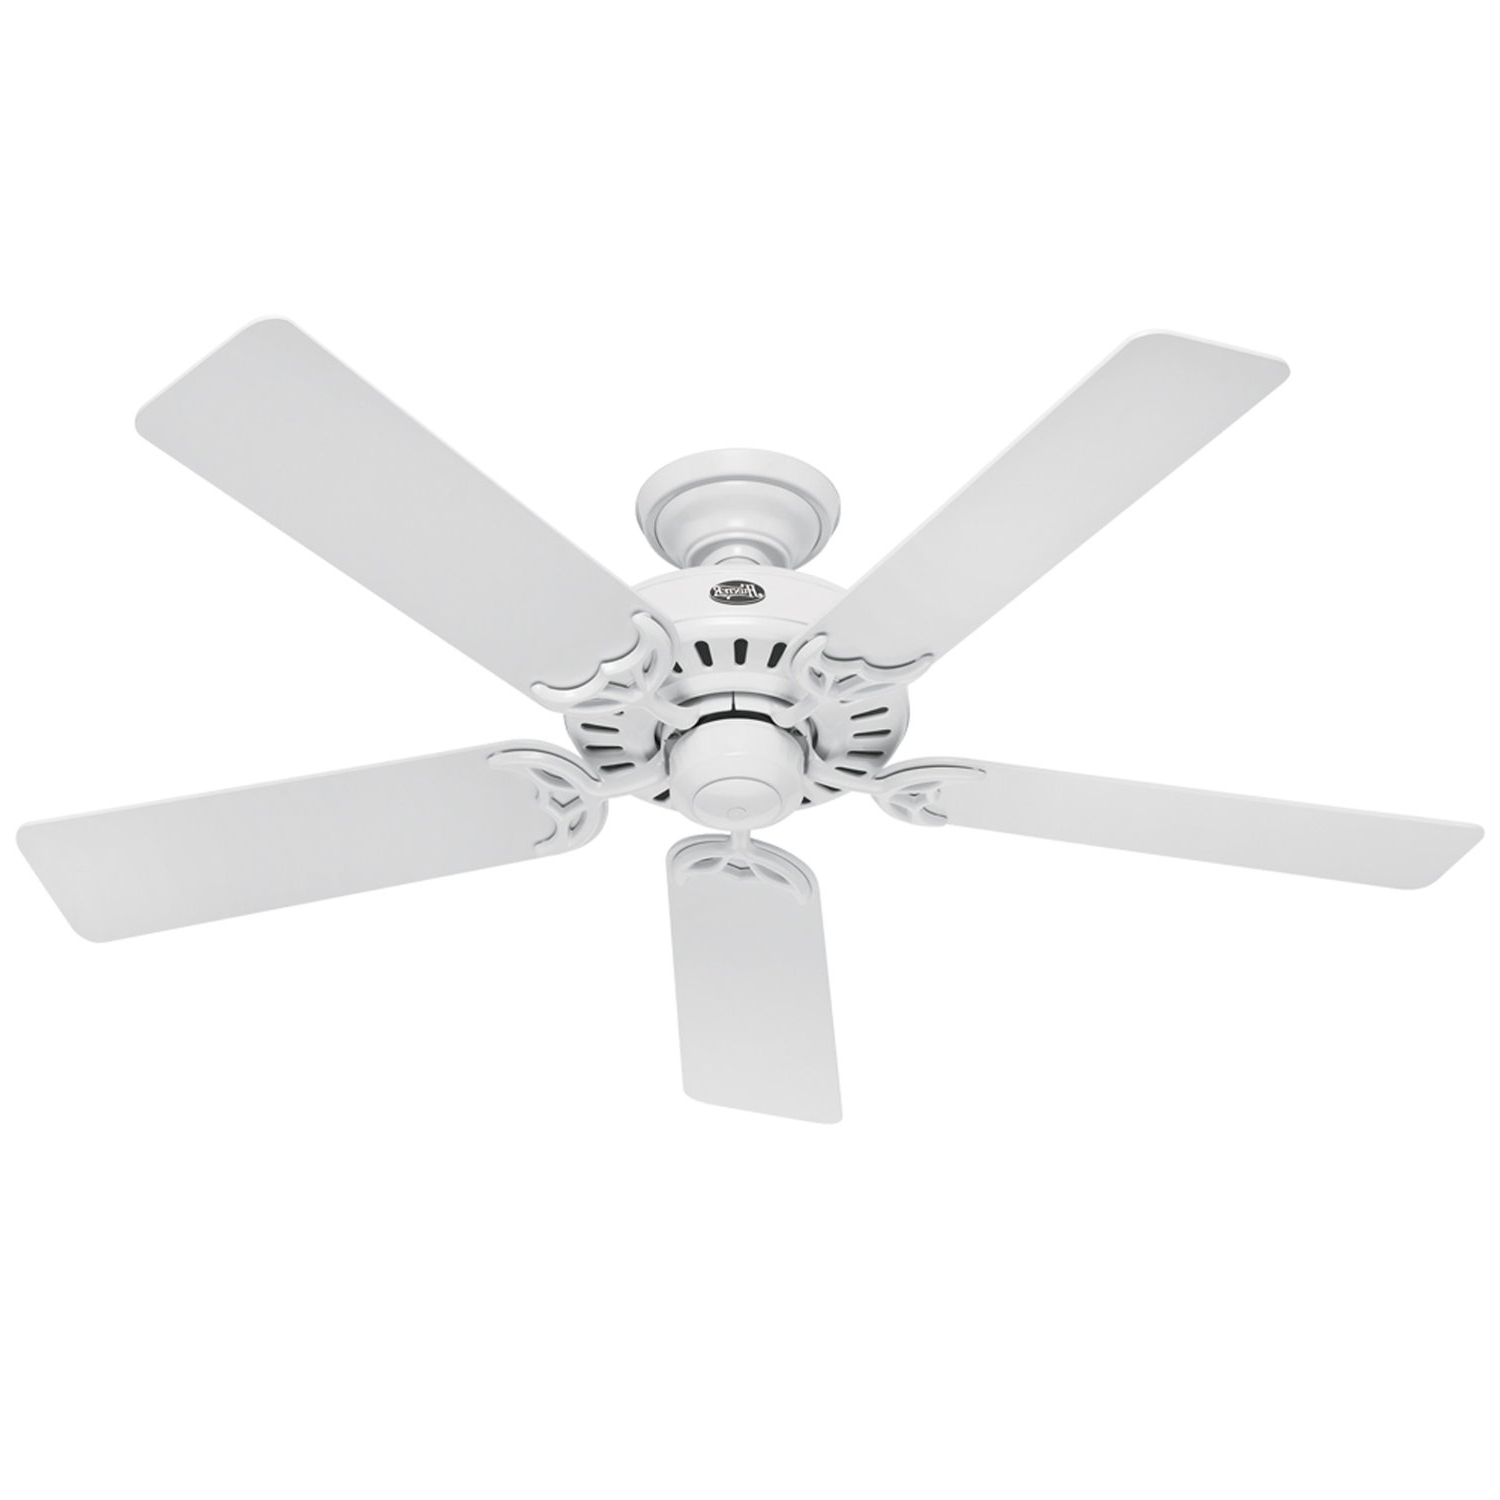 Hampton bay ceiling fan user manual best accessories home 2017 hton bay ceiling fan user manual best accessories home 2017 mozeypictures Image collections